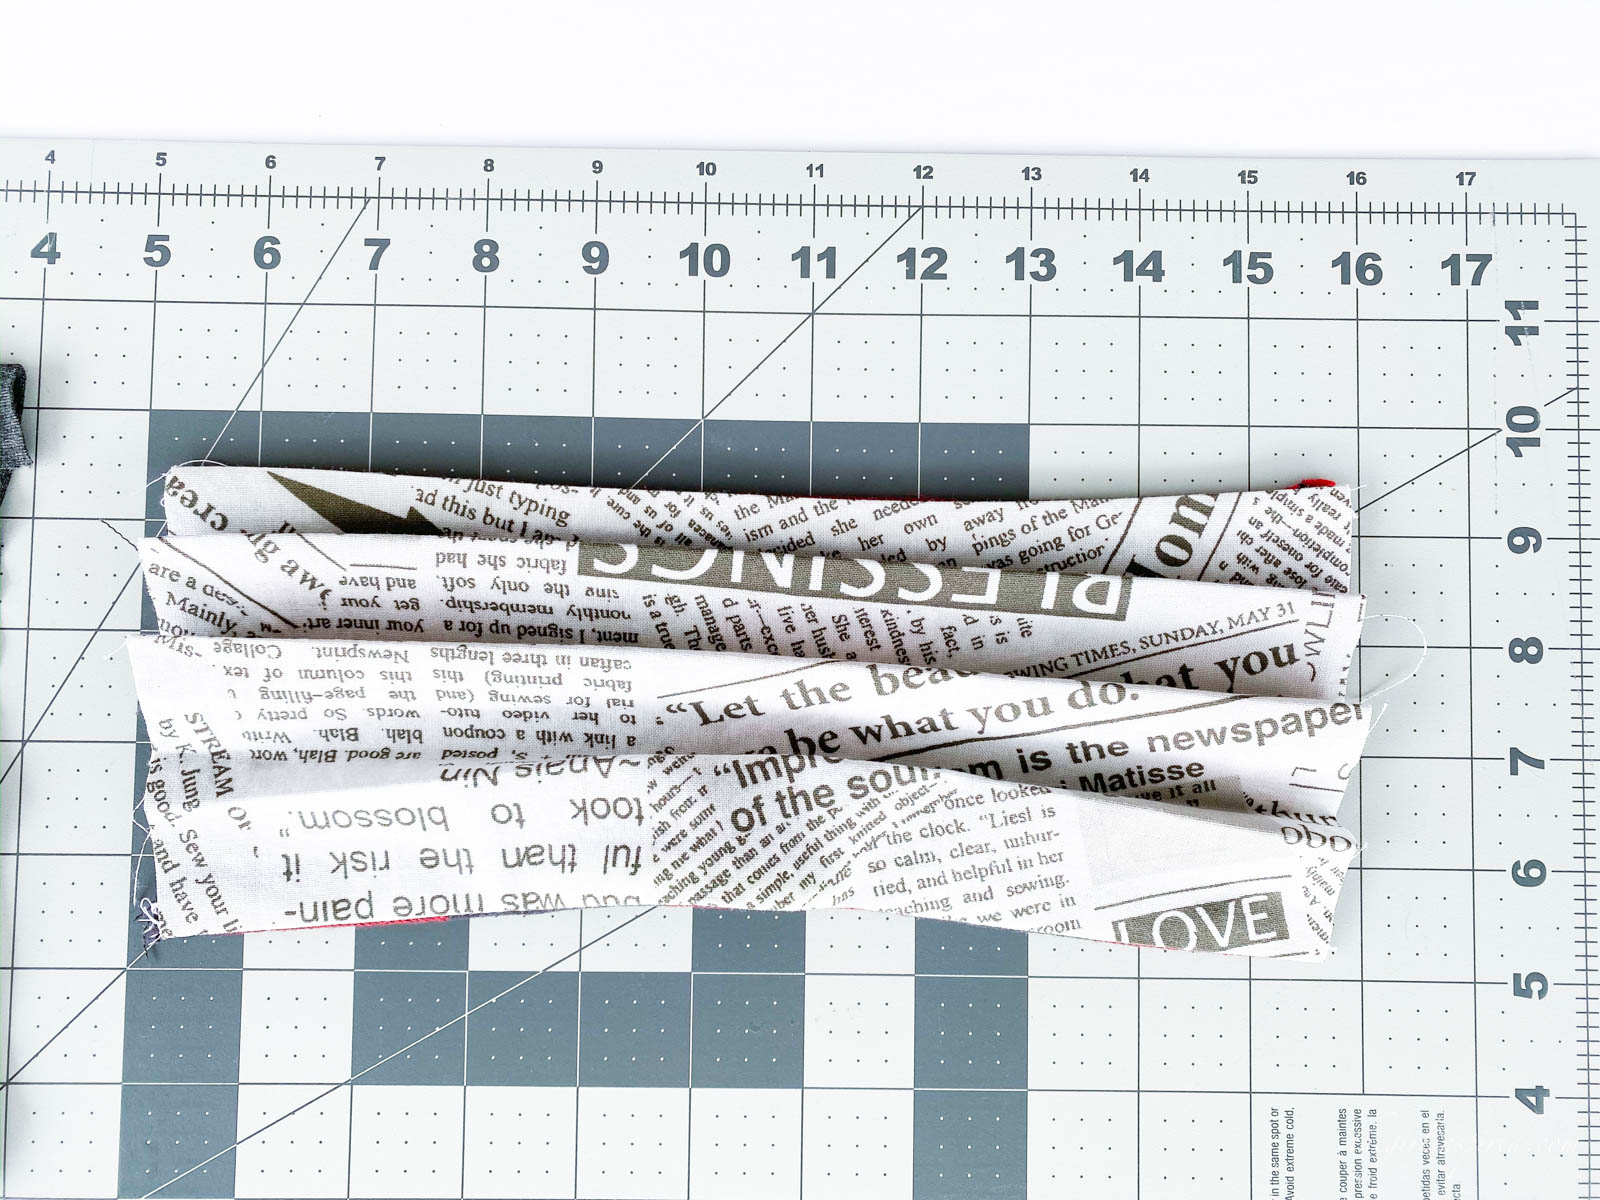 pleated folds in newsprint fabric mask on rulered mat